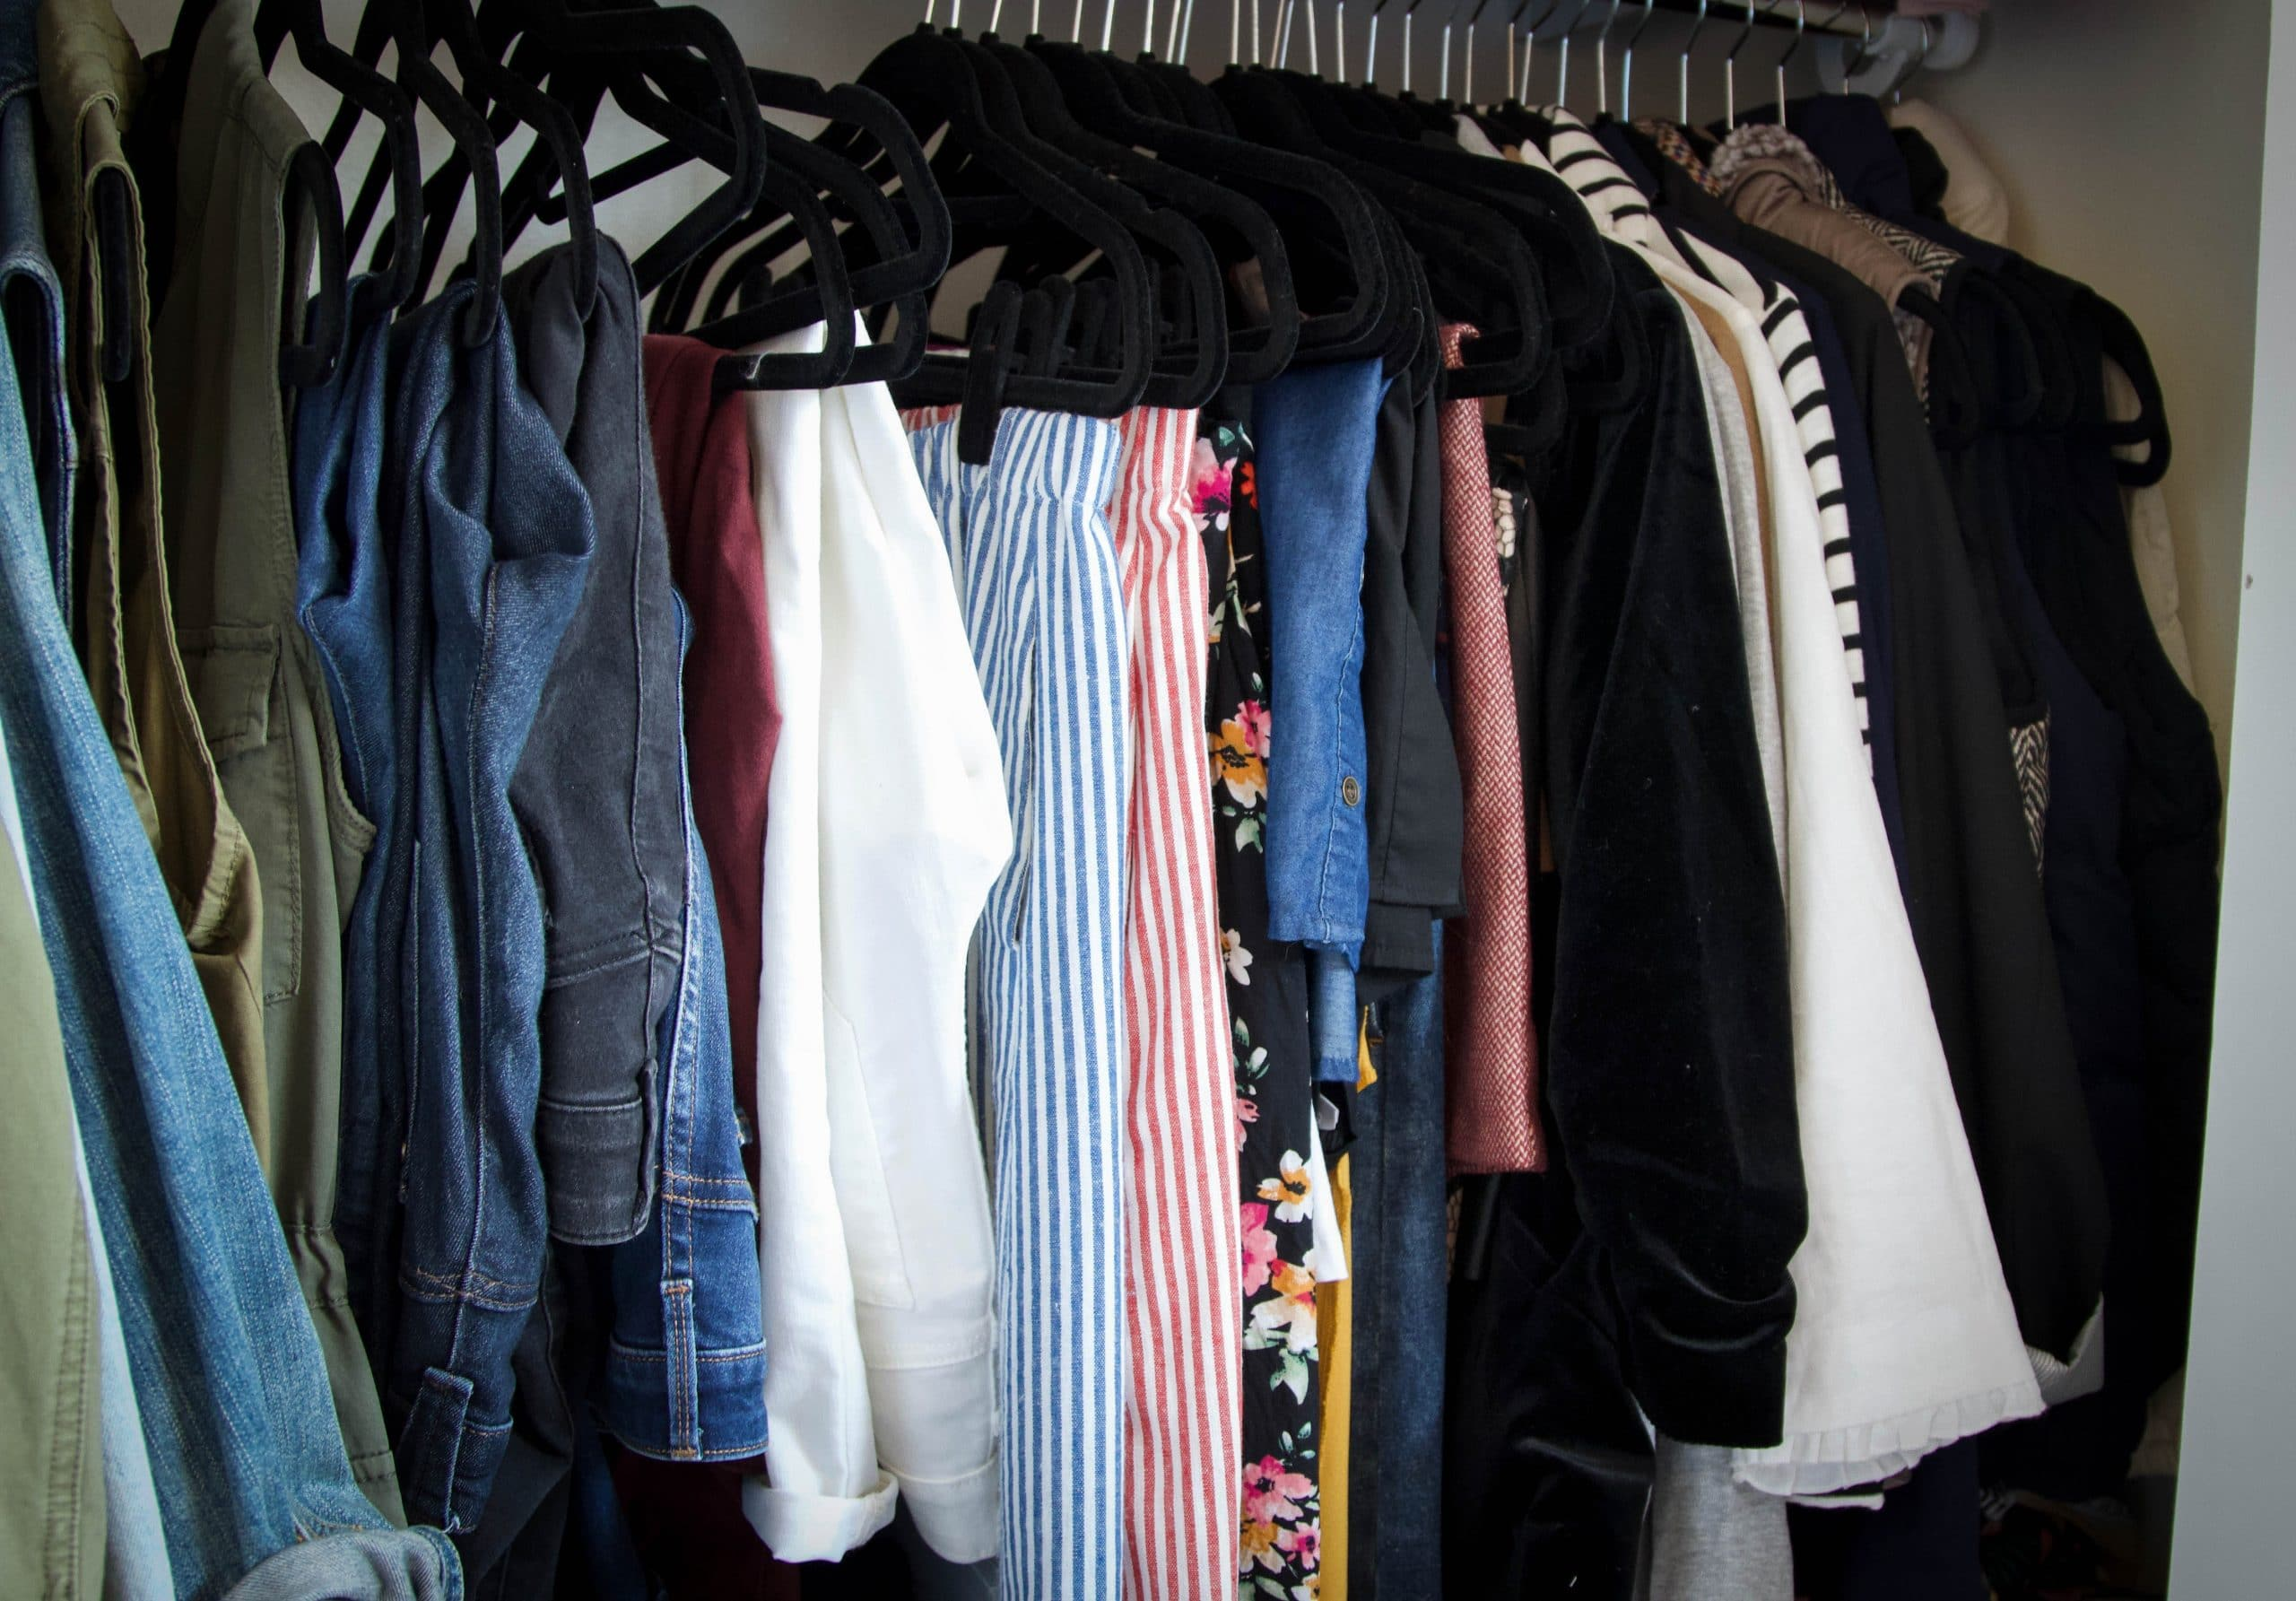 Closet Organization Jeans and Skirts